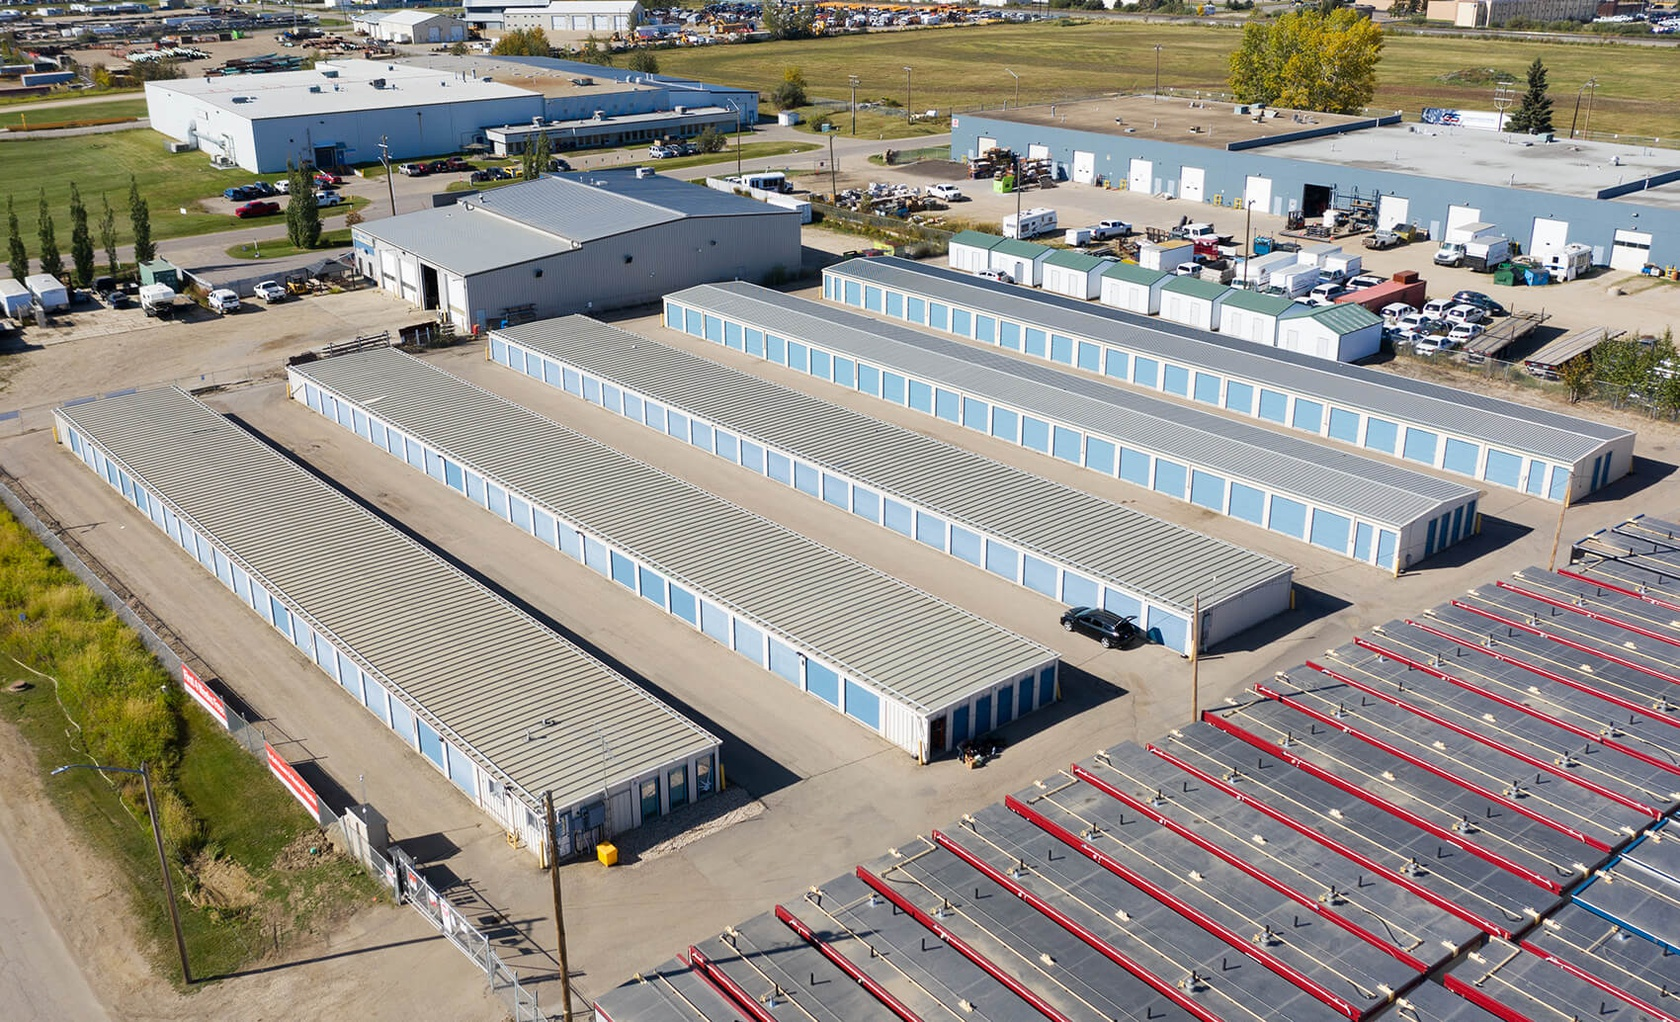 Rent Spruce Grove storage units at 71 Diamond Ave. We offer a wide-range of affordable self storage units and your first 4 weeks are free!